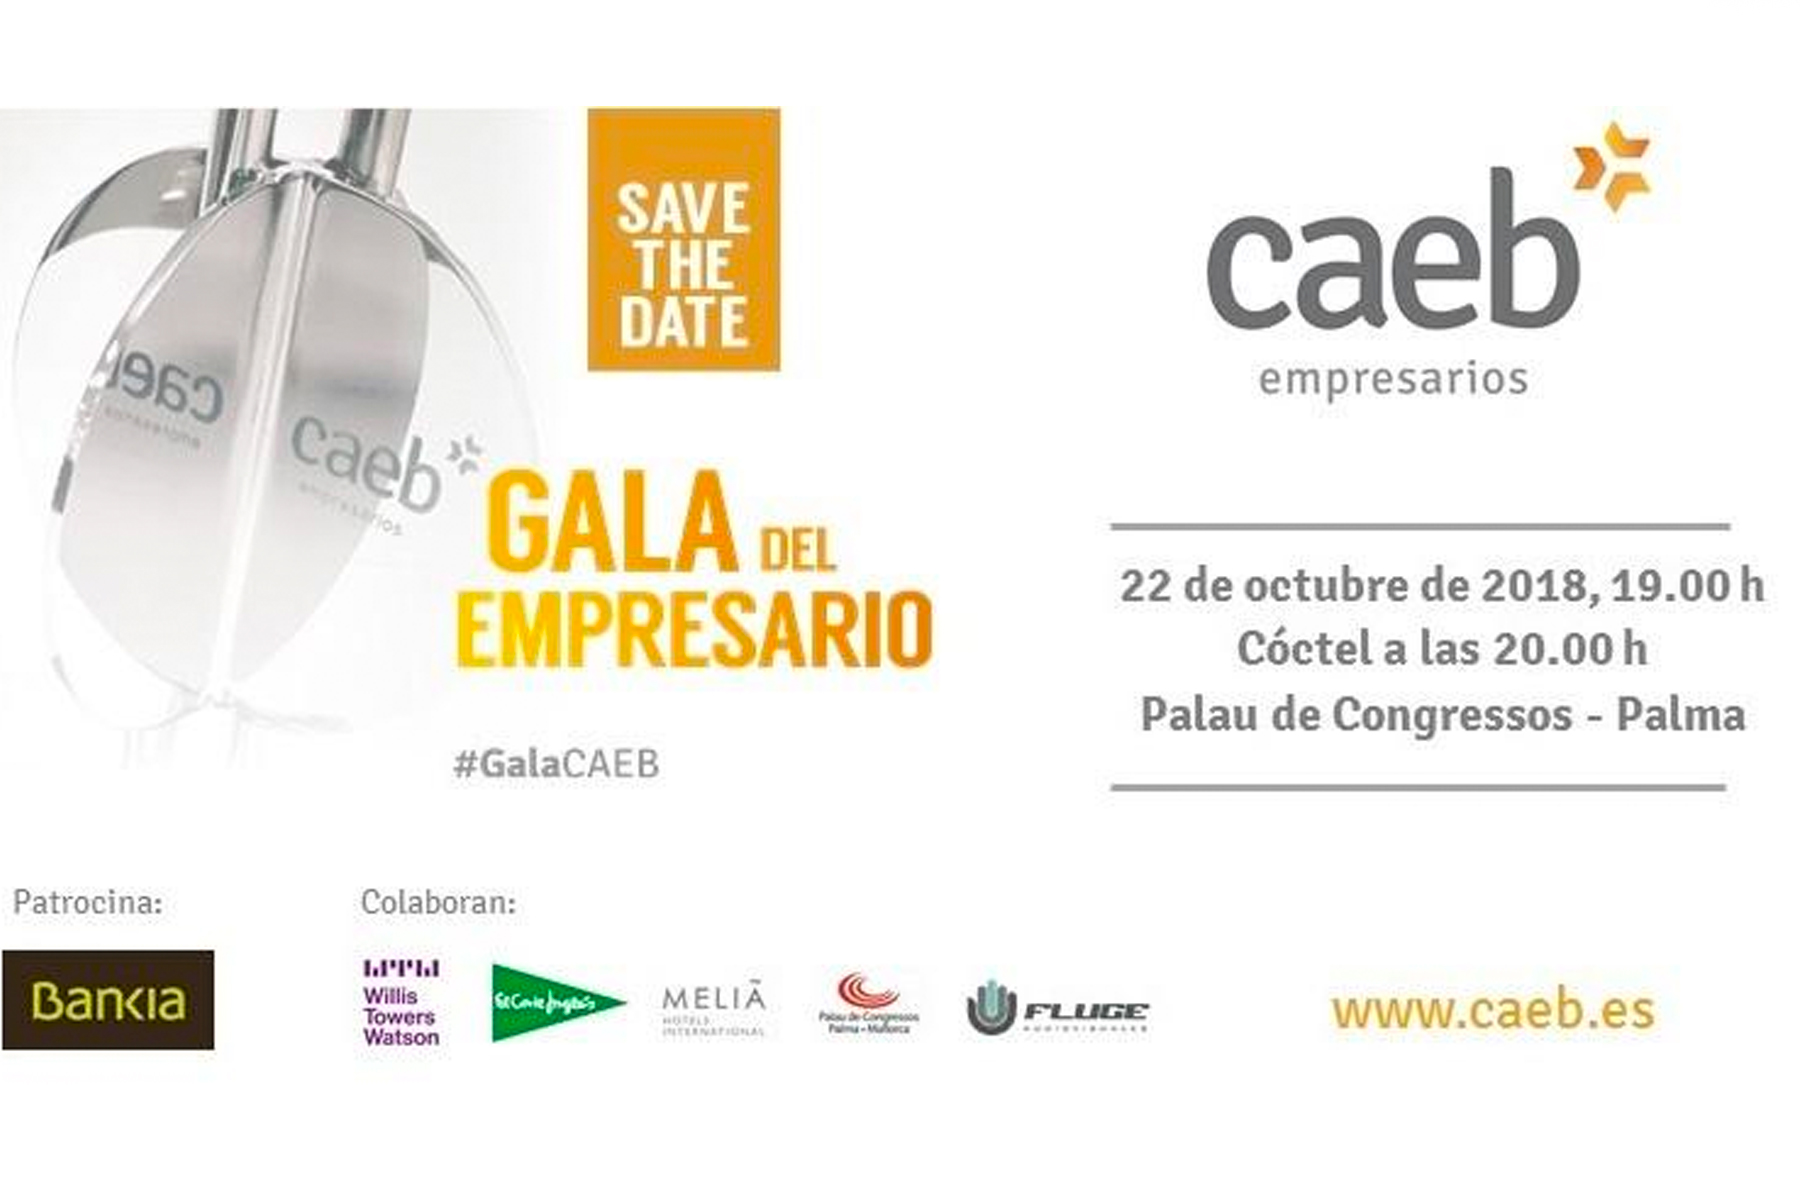 Bernat Bonnin, nominated for the Entrepreneur of the Year Award by the CAEB